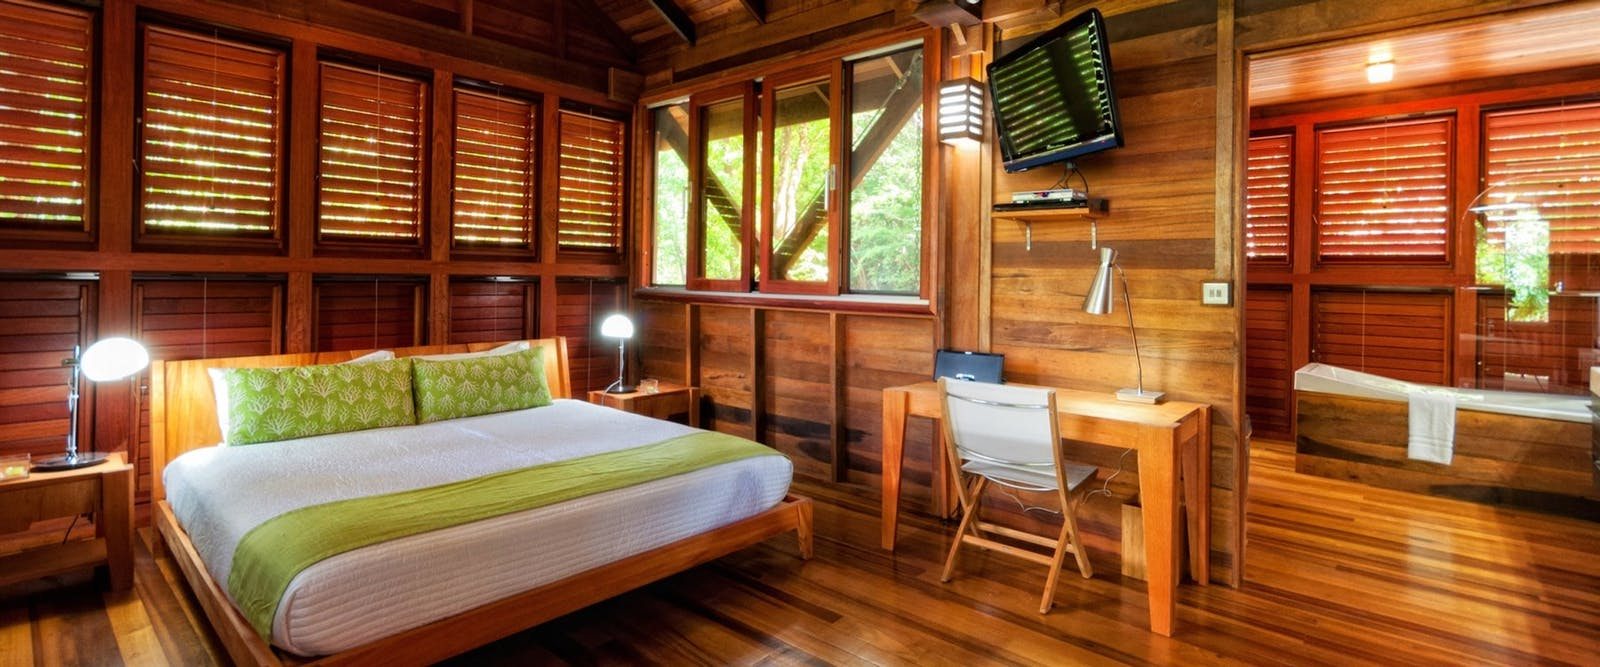 Bedroom in Zing Zing Villa at Secret Bay, Dominica